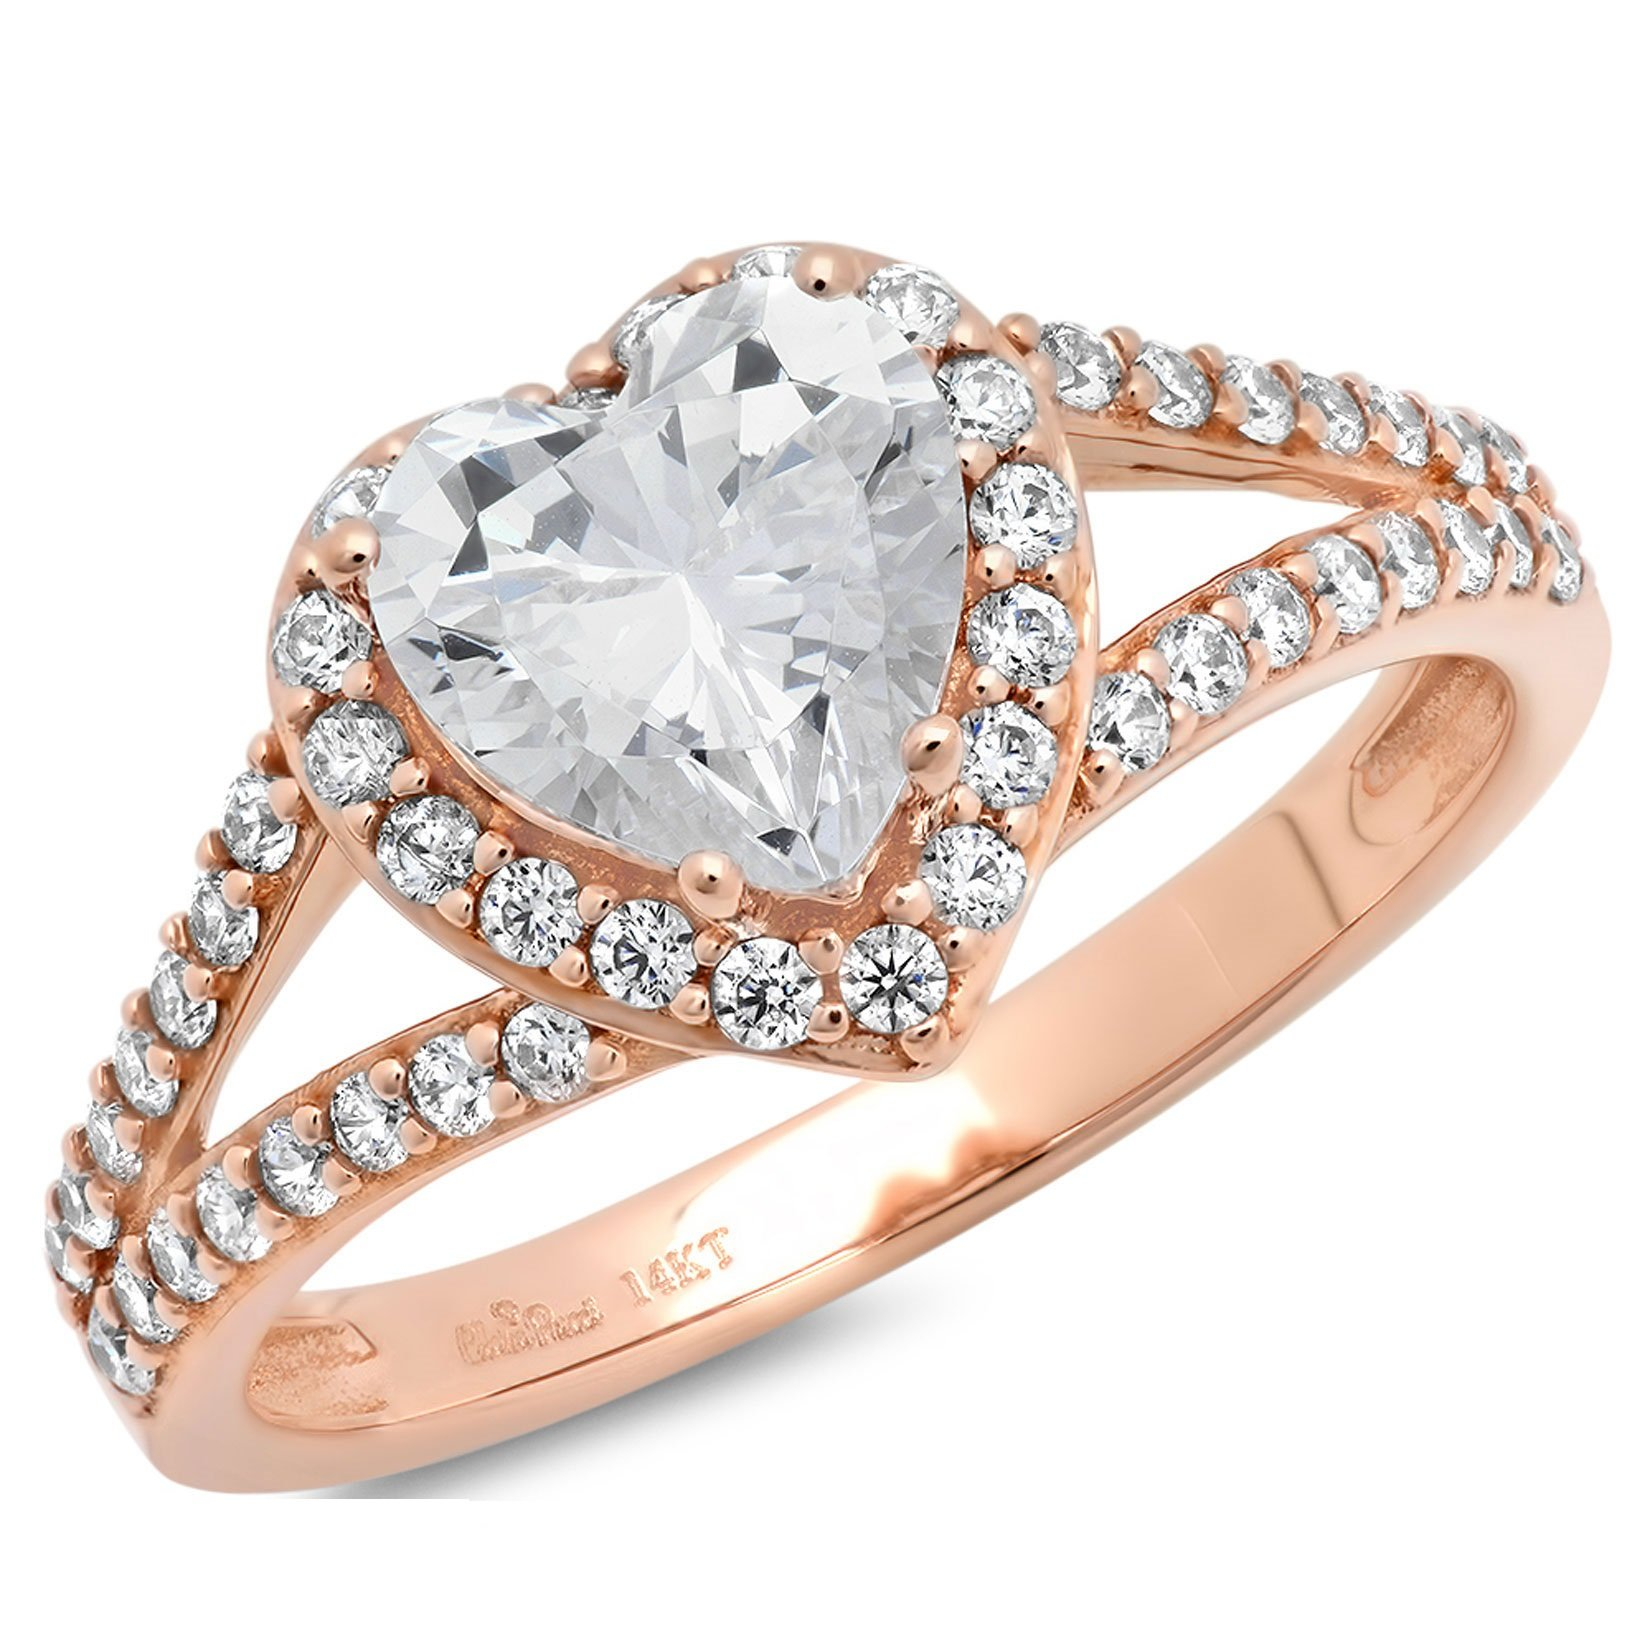 1.95 Ct Heart Cut Pave Solitaire Bridal Anniversary Engagement Wedding Band Ring 14K Rose Gold, Size 5.5, Clara Pucci